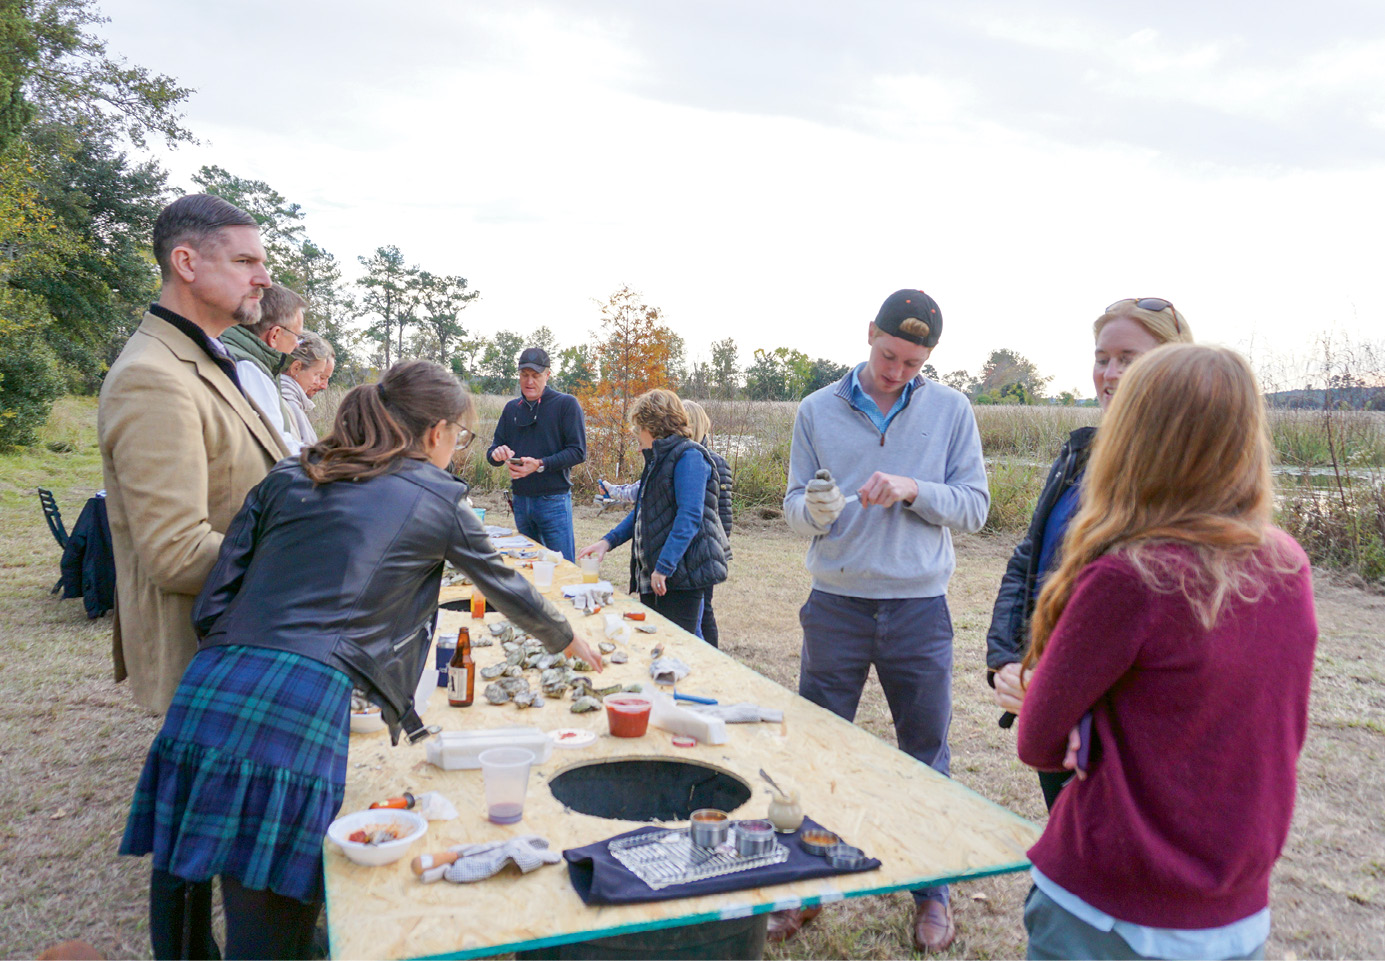 Annual Bull Point Plantation oyster roast in Seabrook, South Carolina.